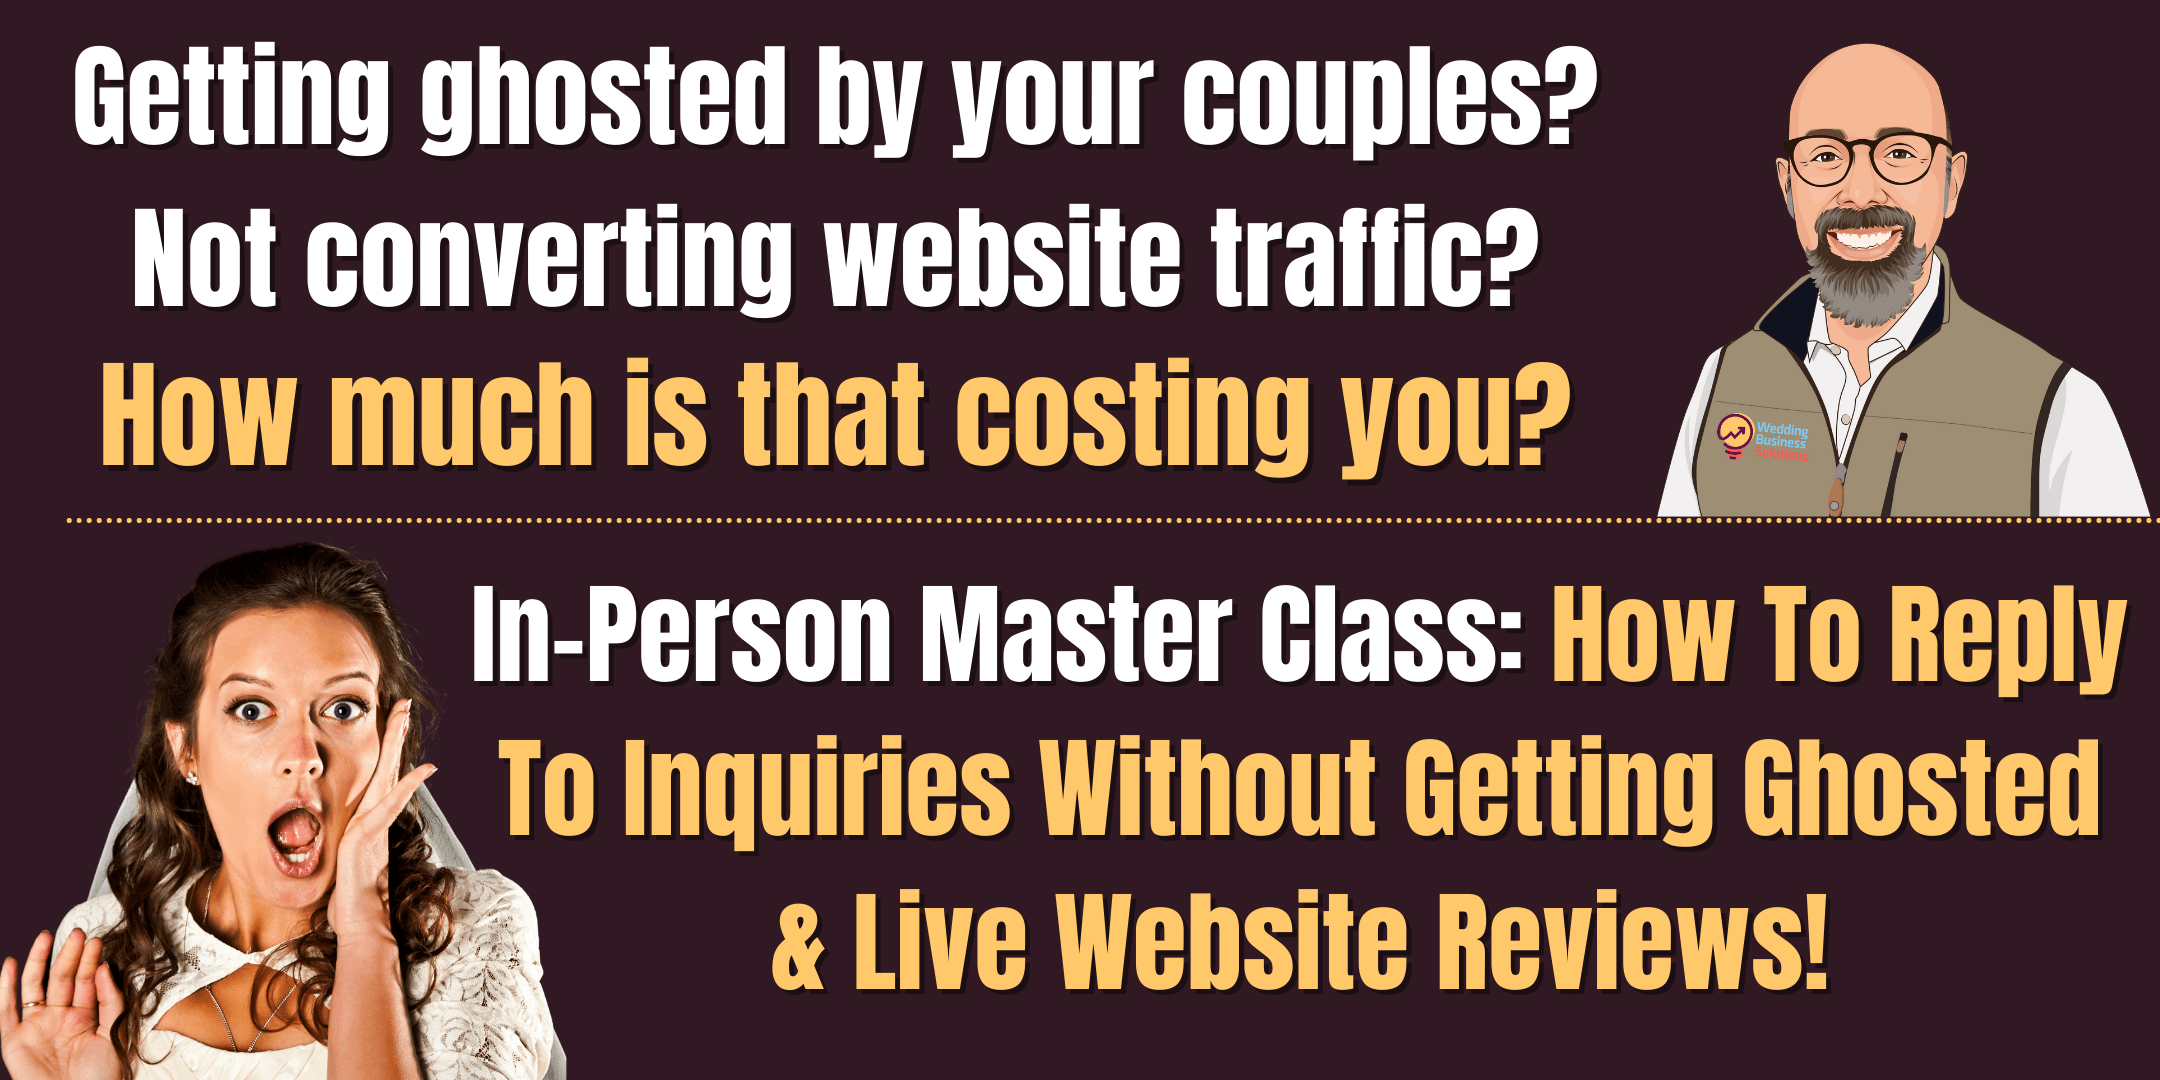 In-Person Master Class - How to not get ghosted & live website reviews